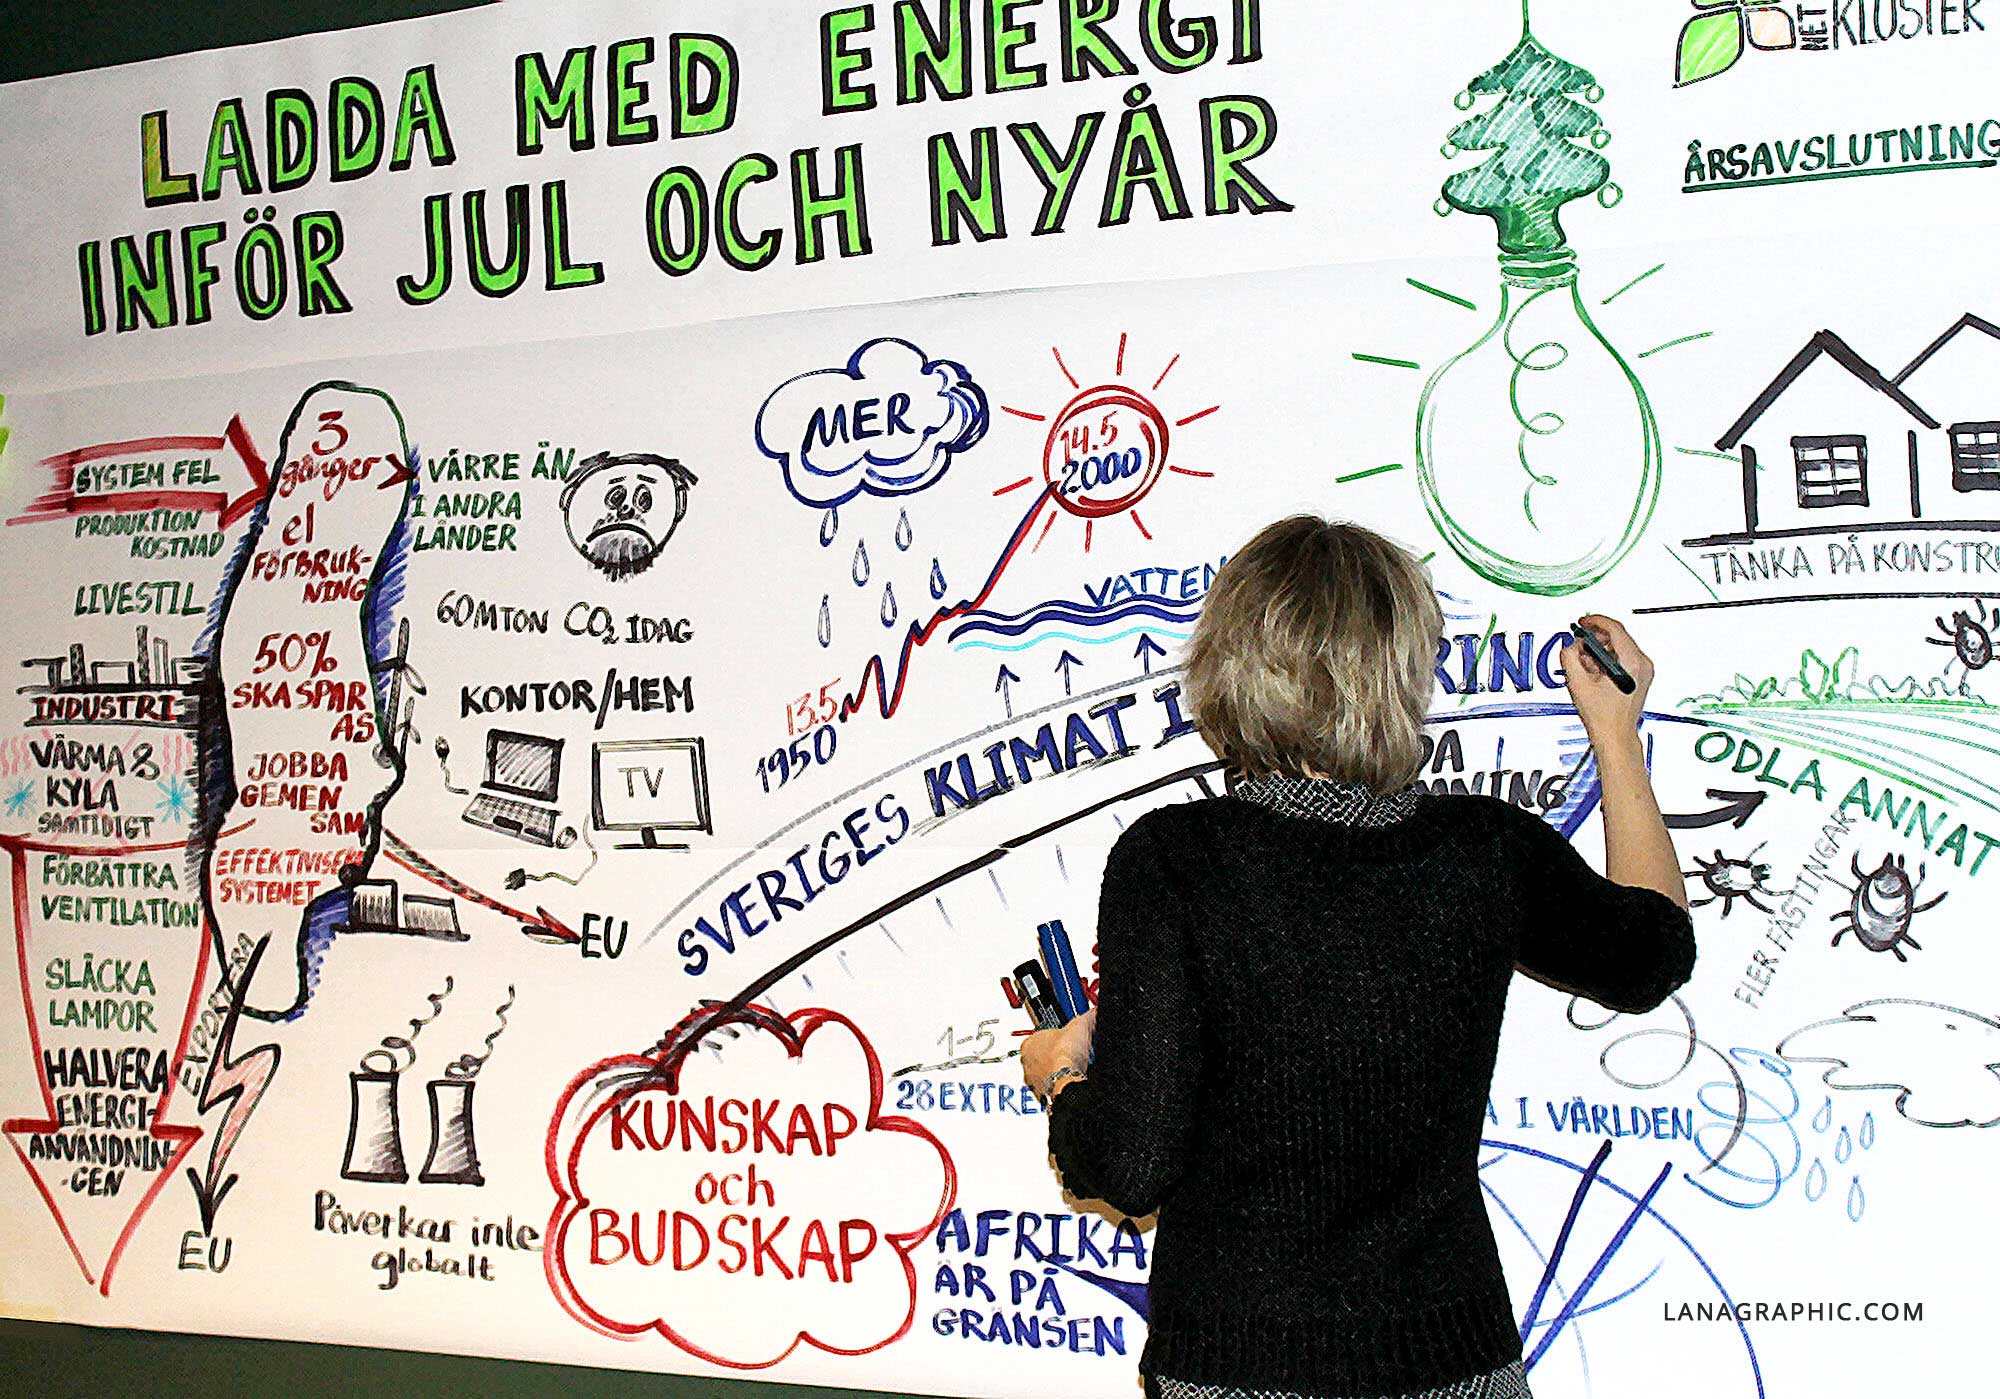 Live-illustration-Ladda-med-Energi-Lanagraphic